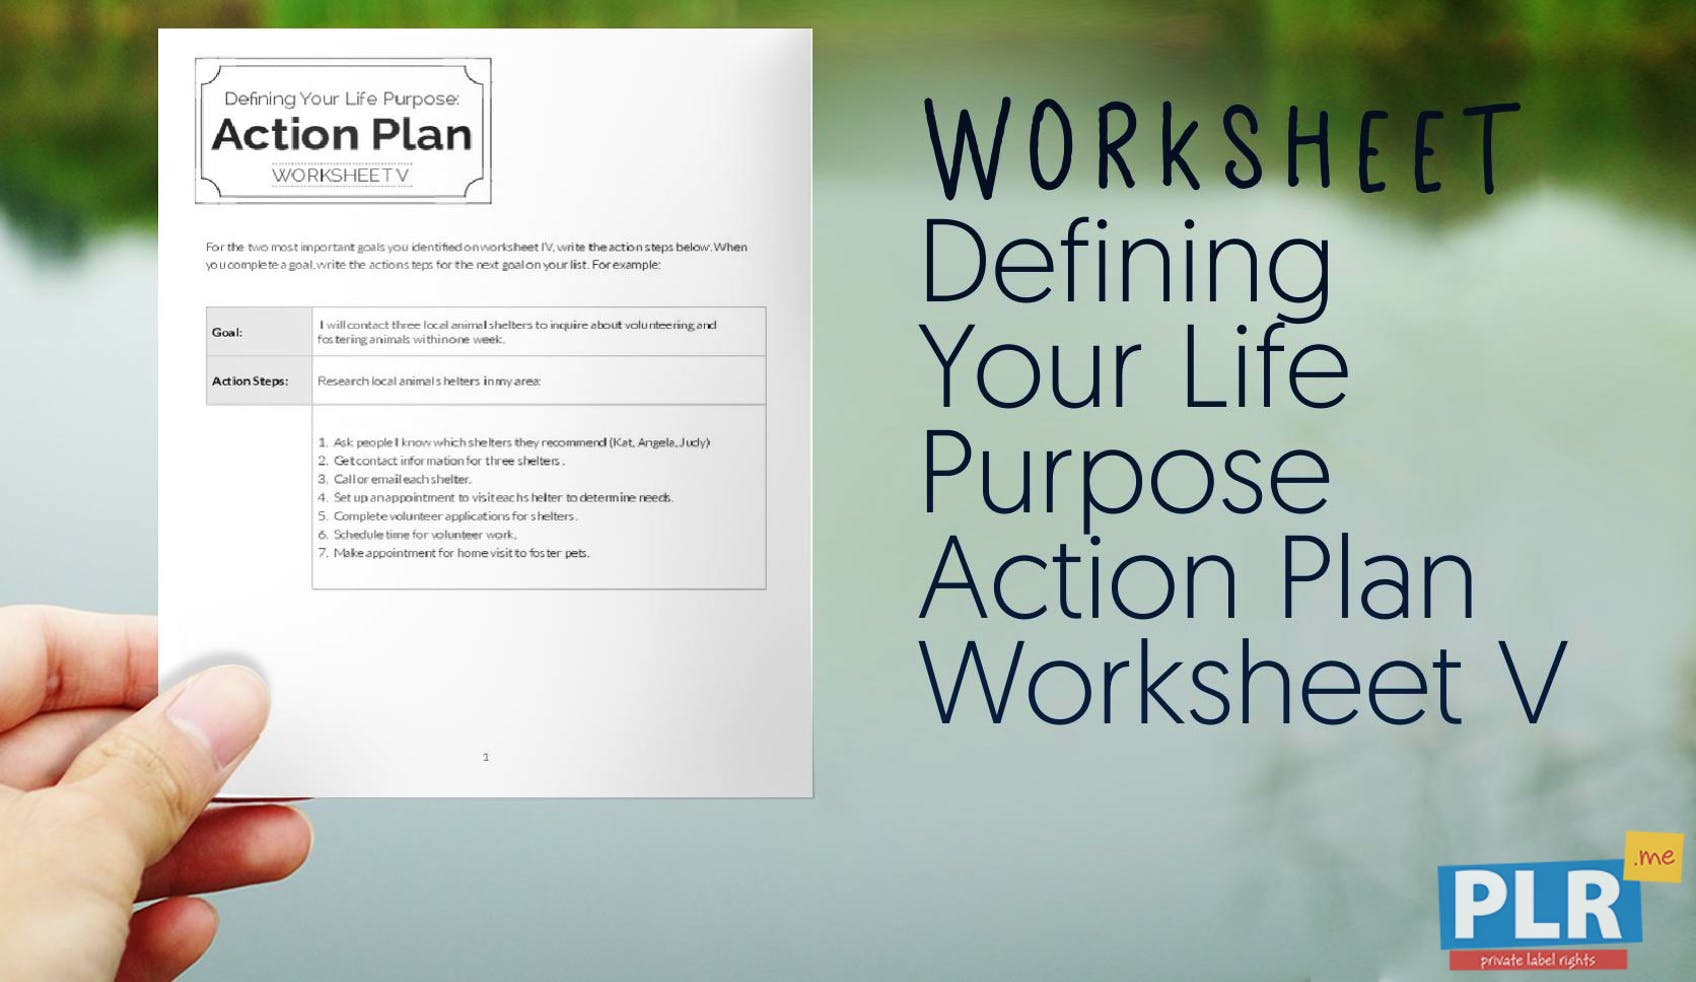 5 Year Life Plan Worksheet - Kidz Activities